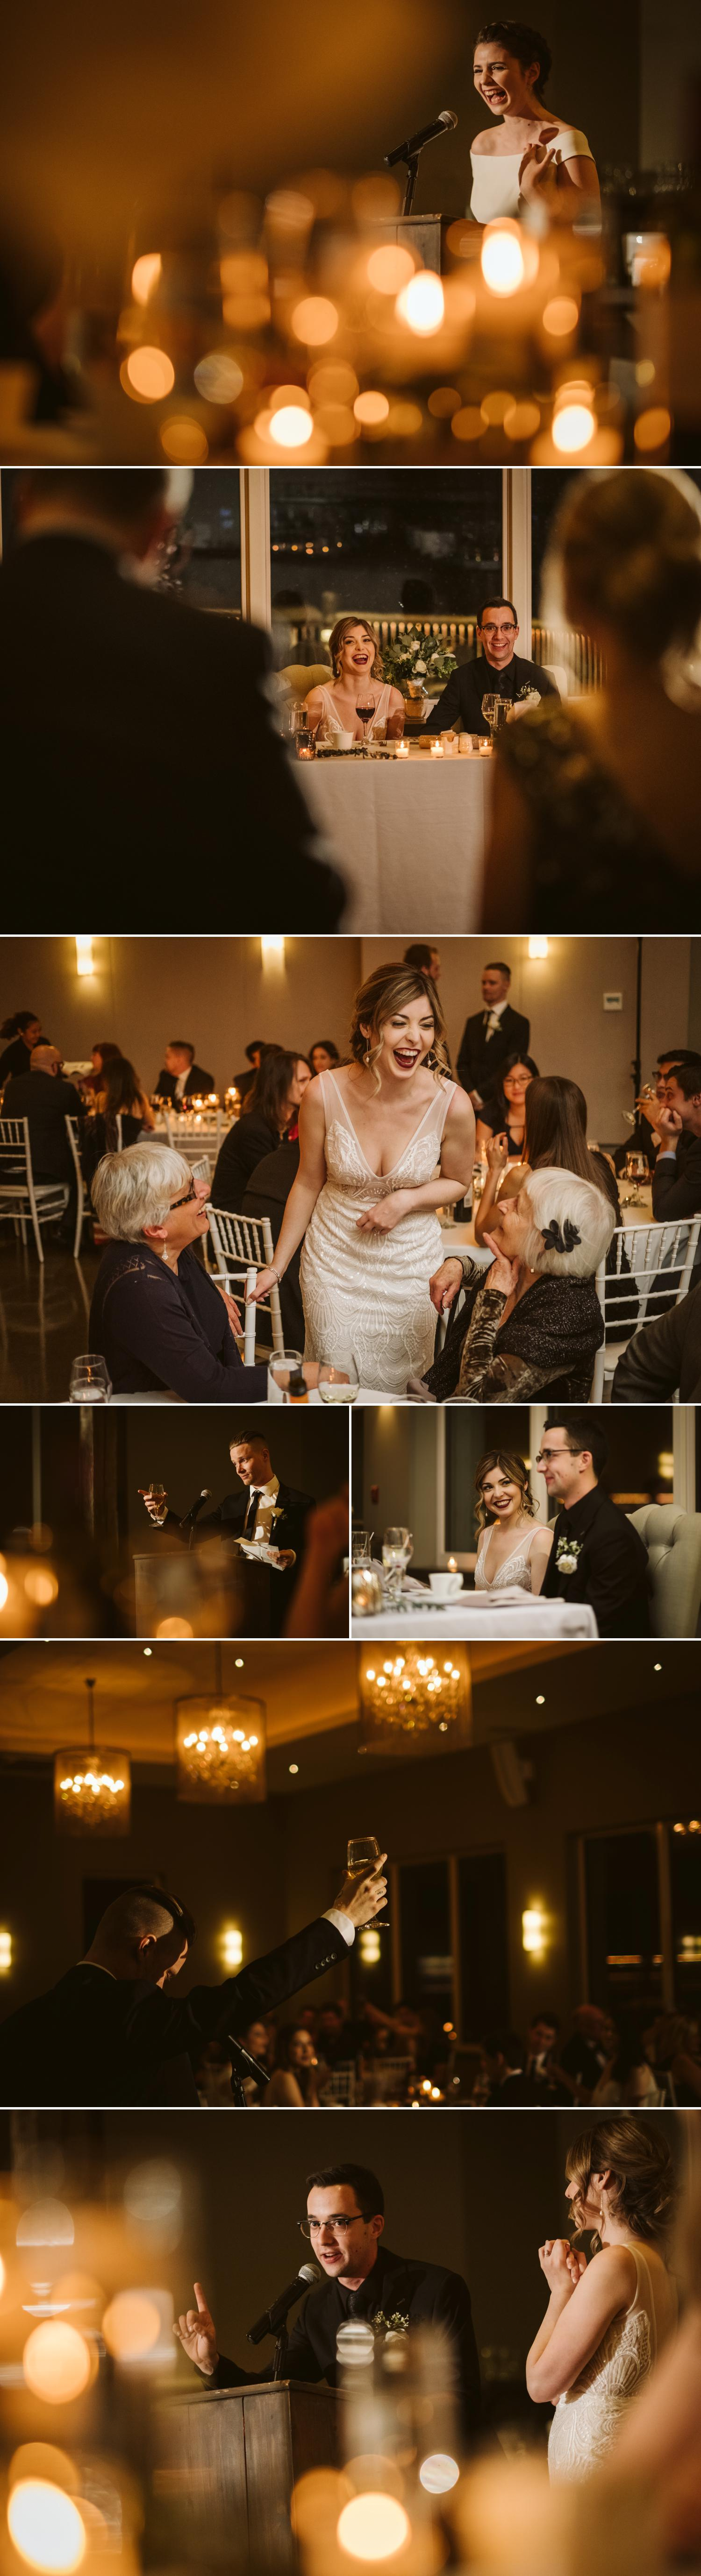 photographs of a wedding reception at le belvedere